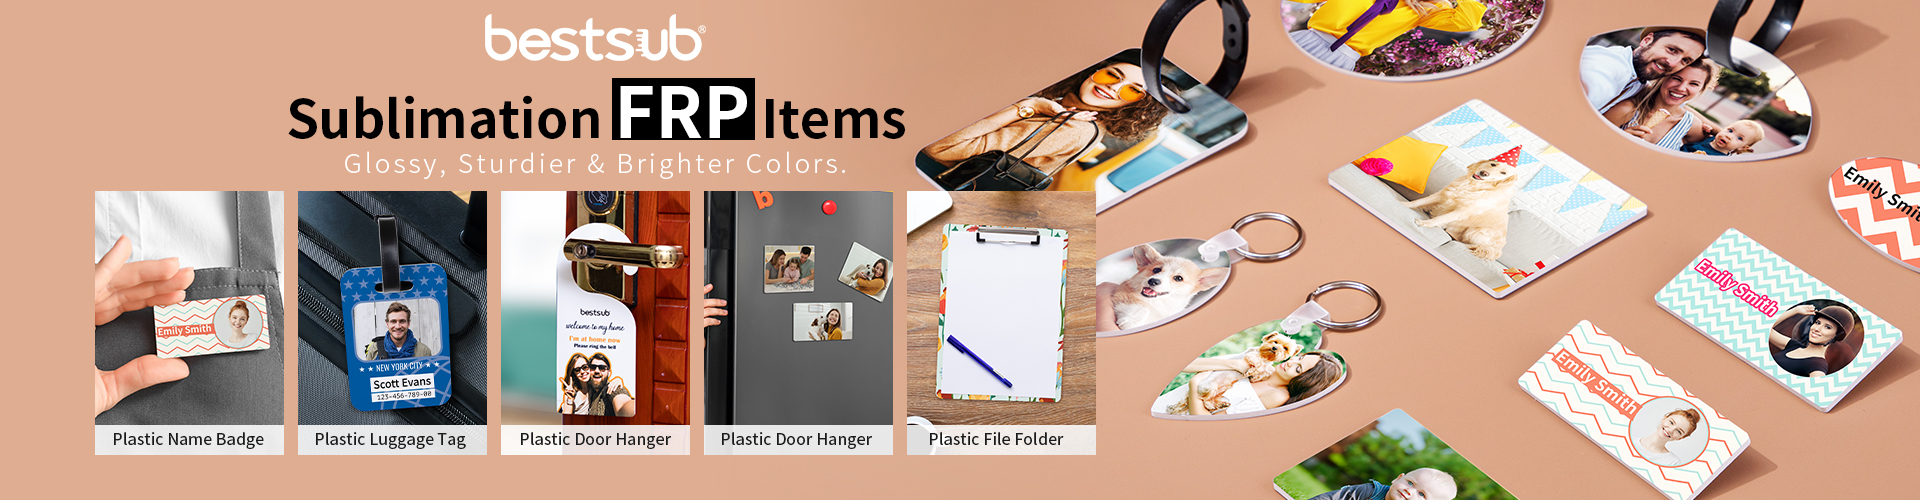 2021-09-26_Sublimation_FRP_Items_new_web